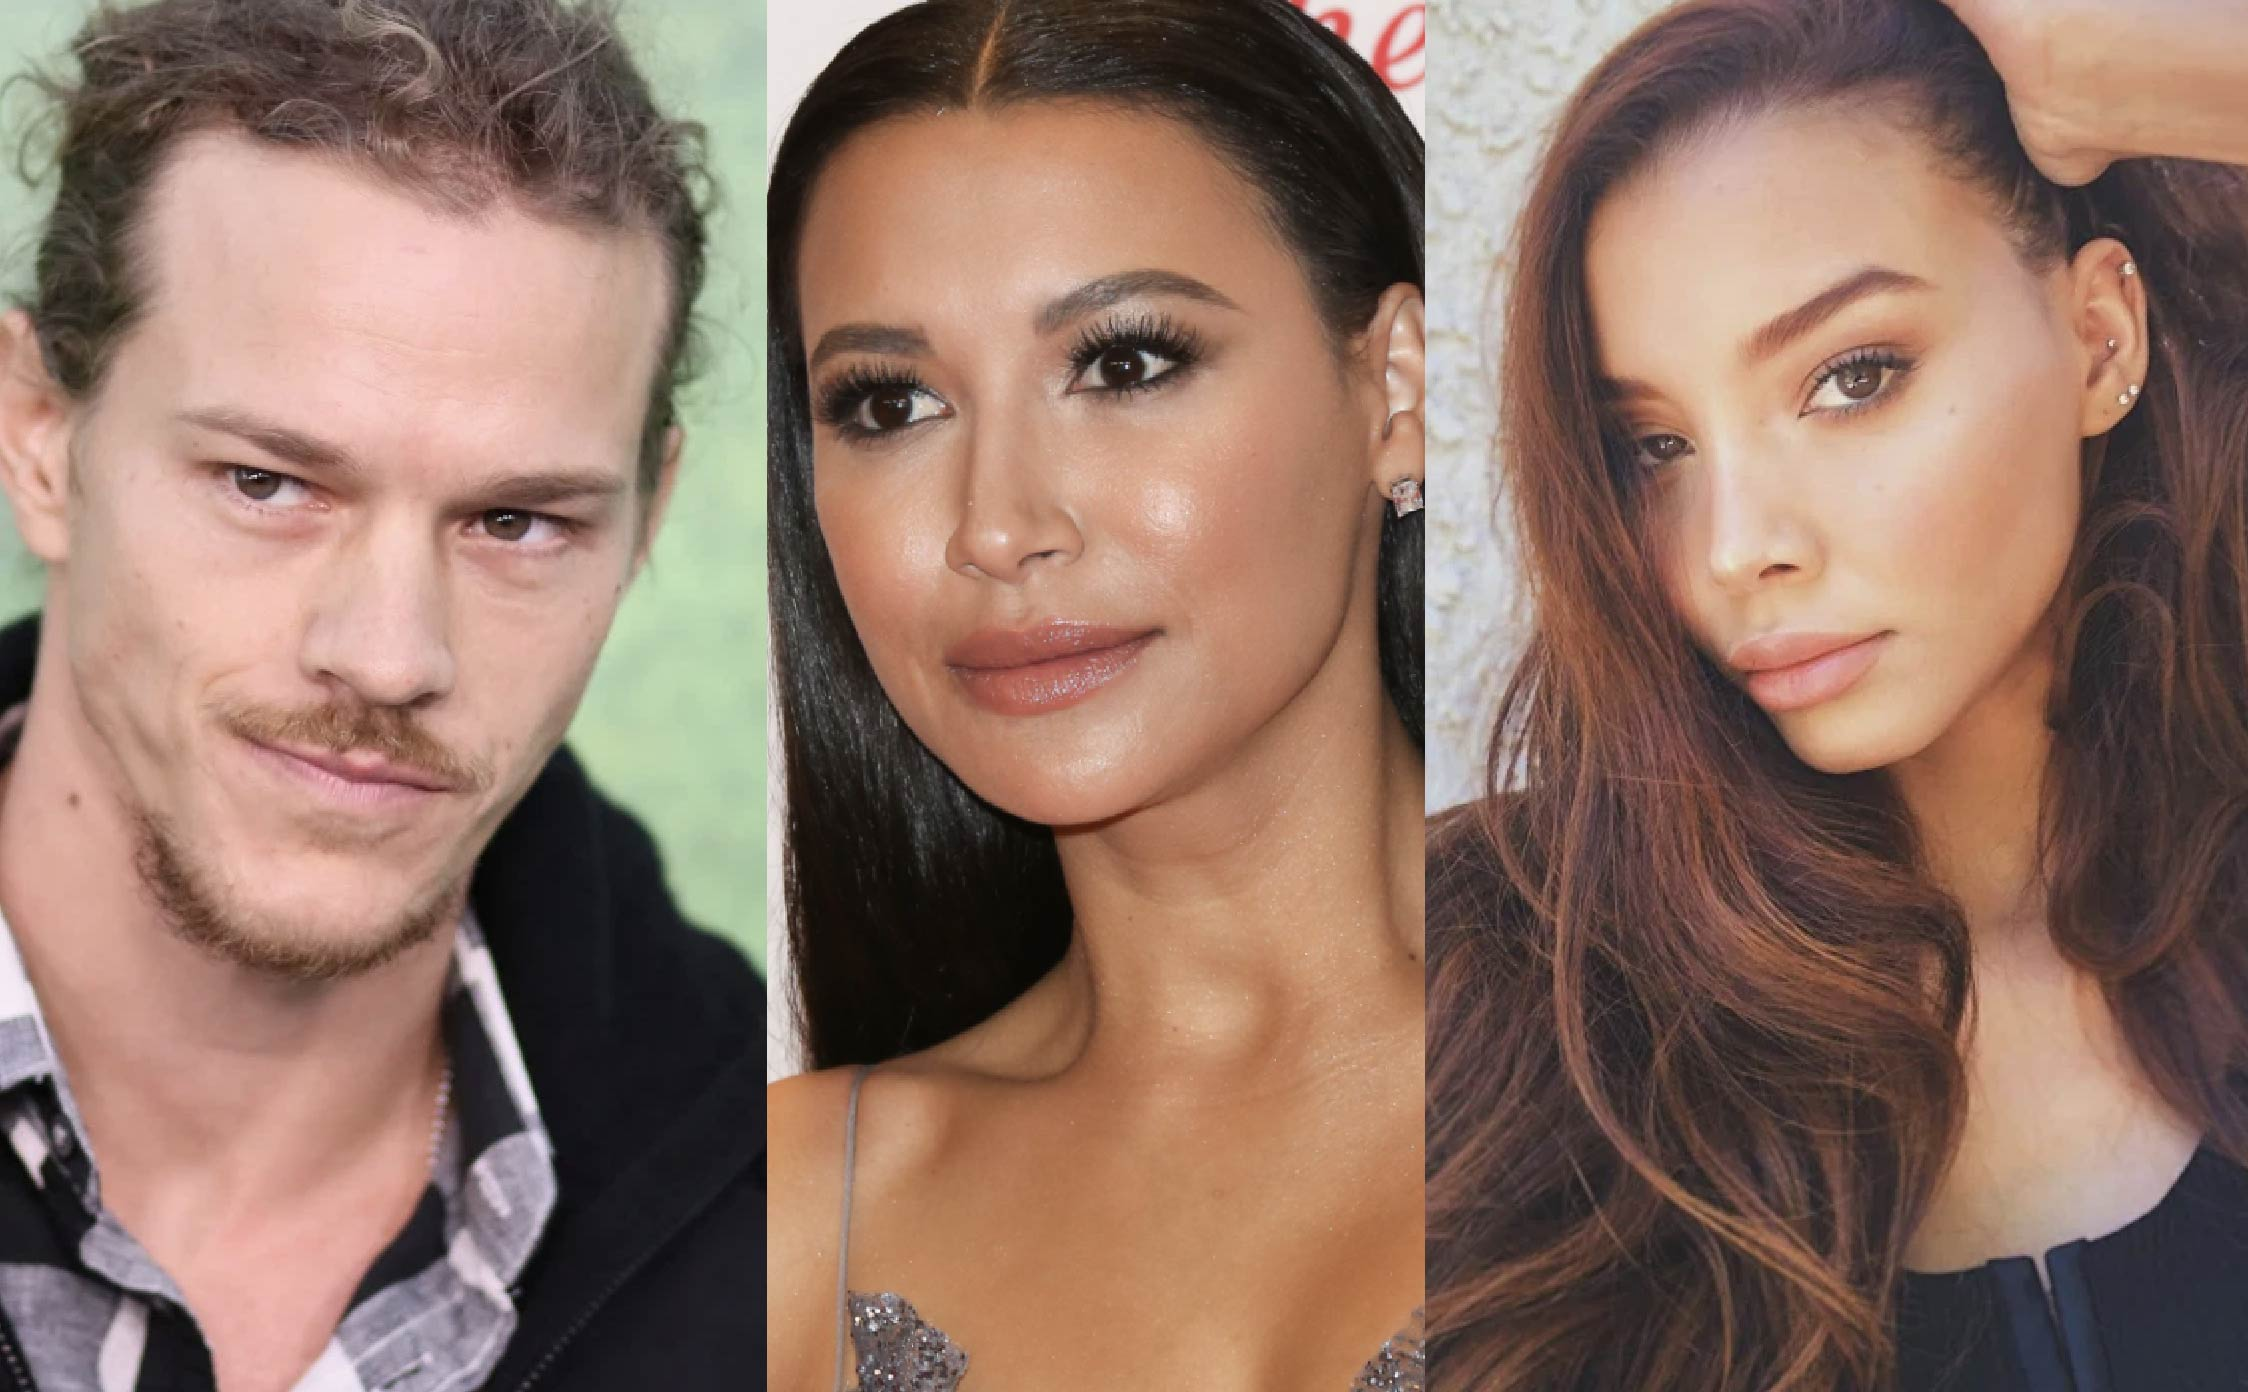 Less Than Three Months After Her Drowning, Naya Rivera's Ex-Husband is Now Living With Her 25 Year-Old Sister